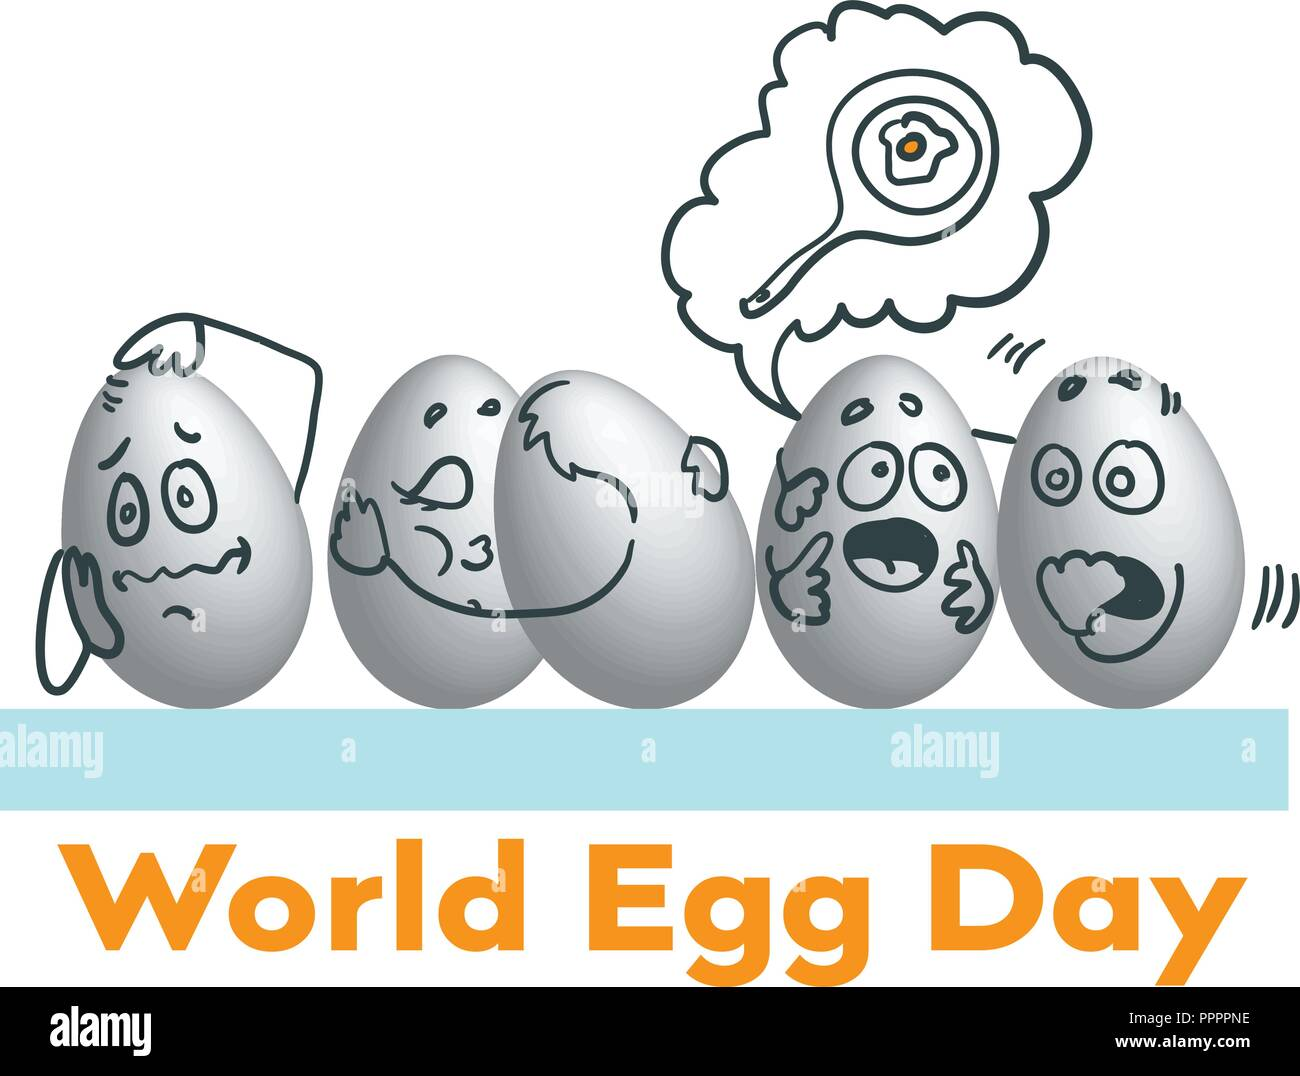 World Egg Day Vector illustration. Suitable for greeting card, poster and banner. - Stock Image